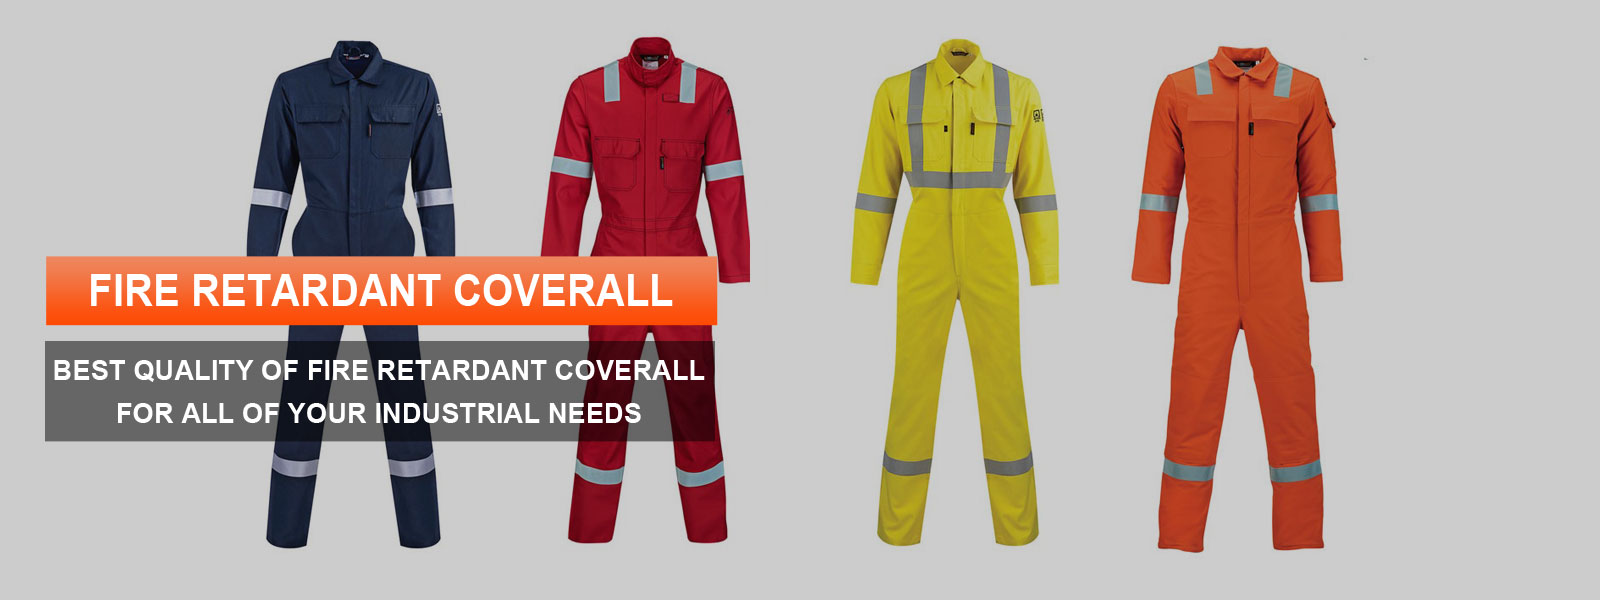 Fire Retardant Coverall Manufacturers in Haryana